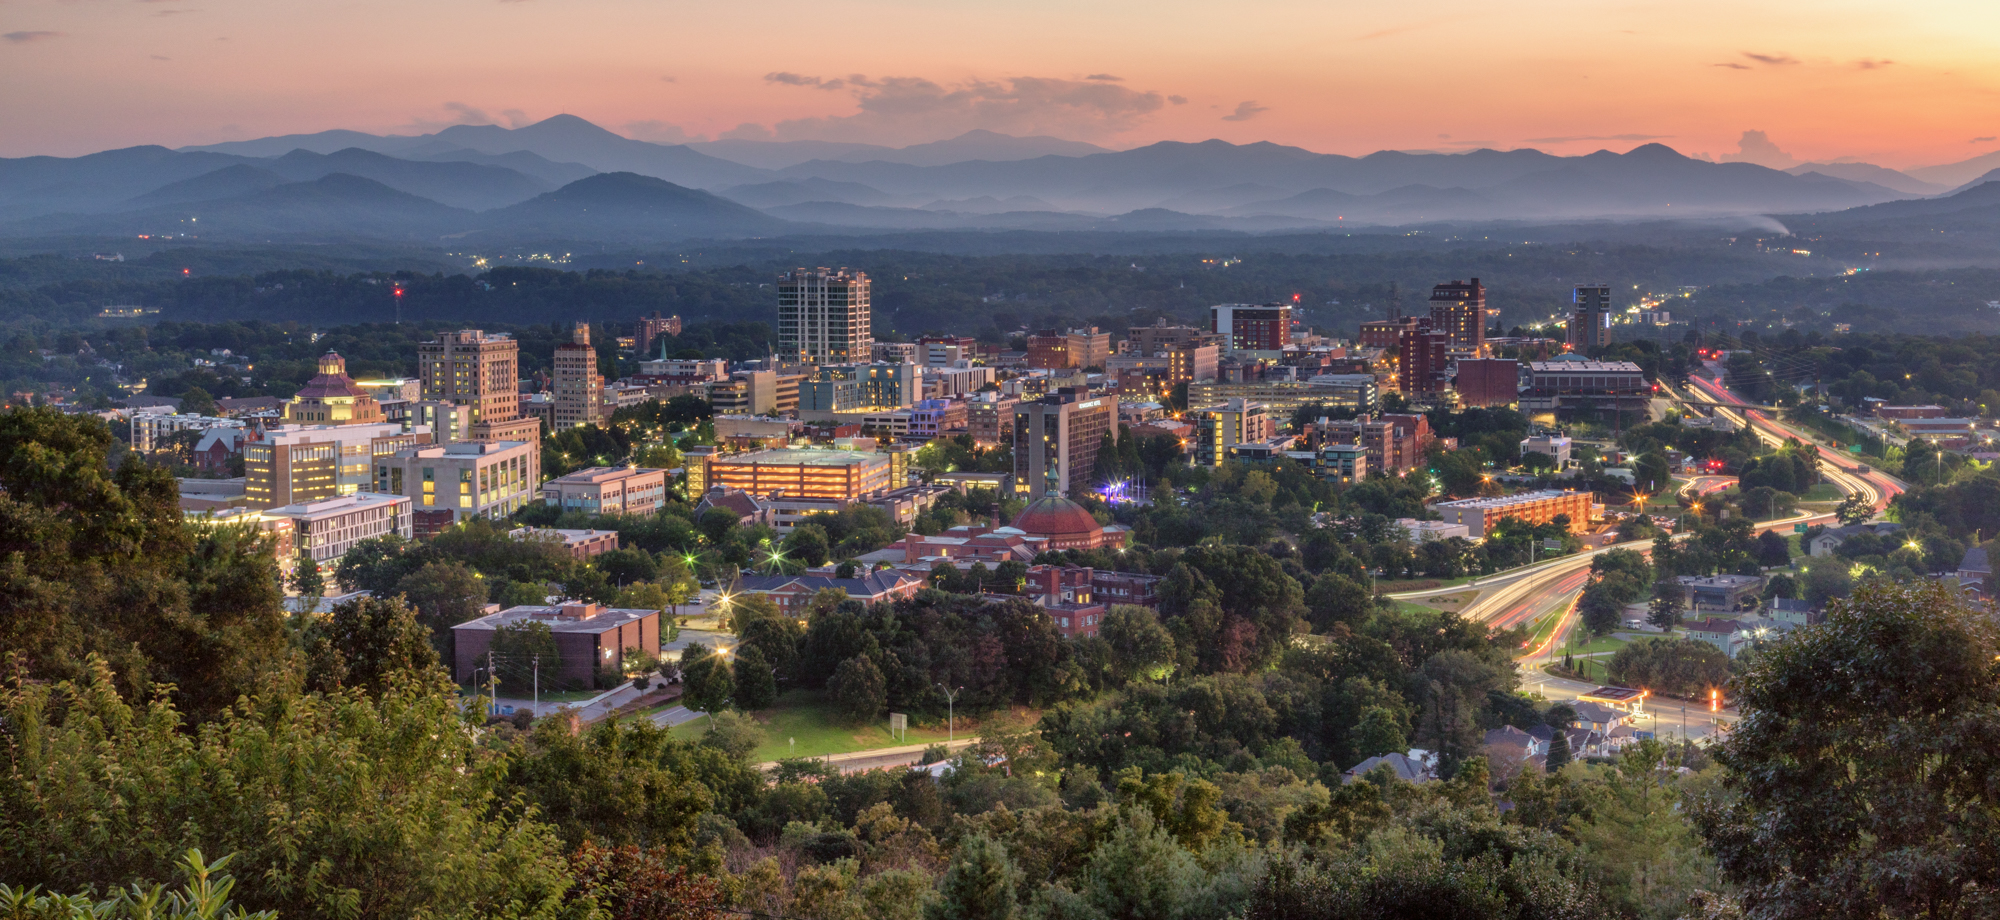 asheville skyline at sunset 2019